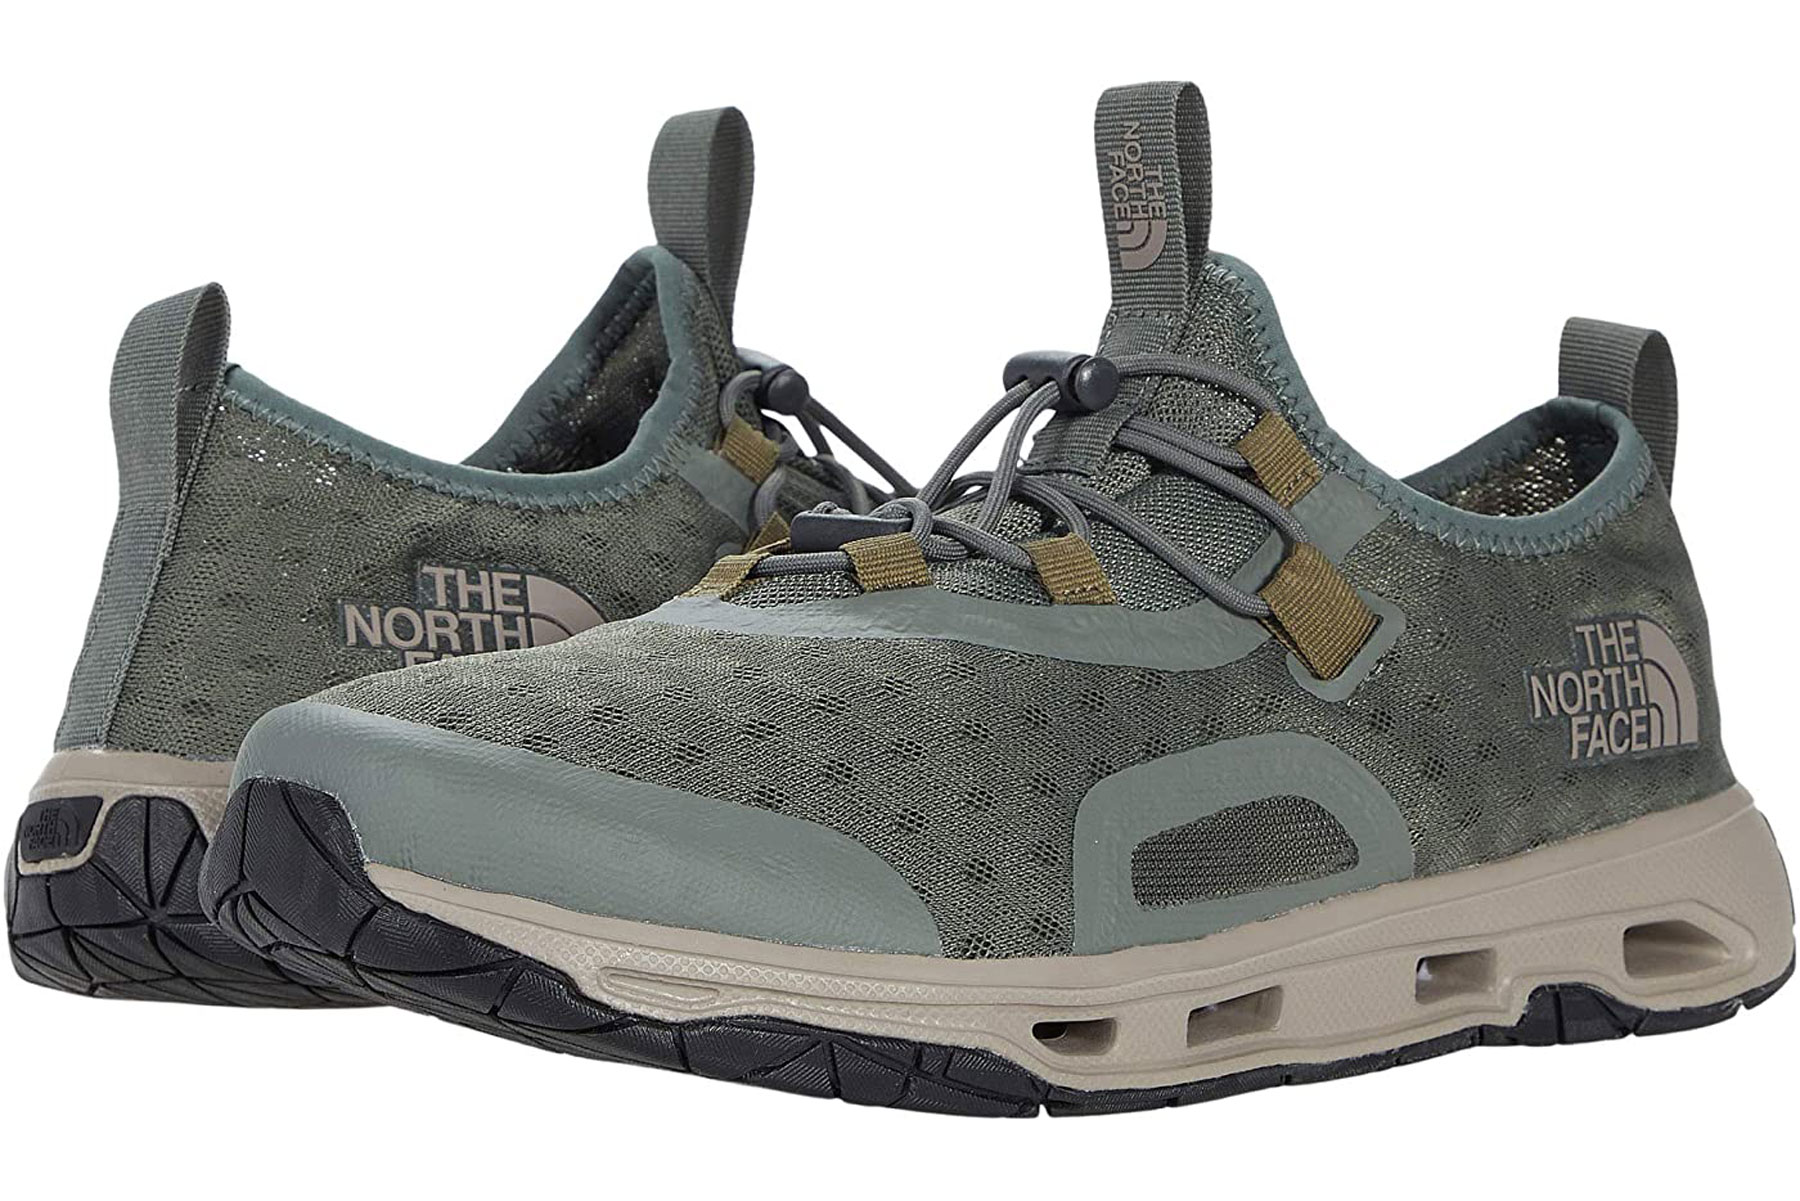 Olive green water shoes